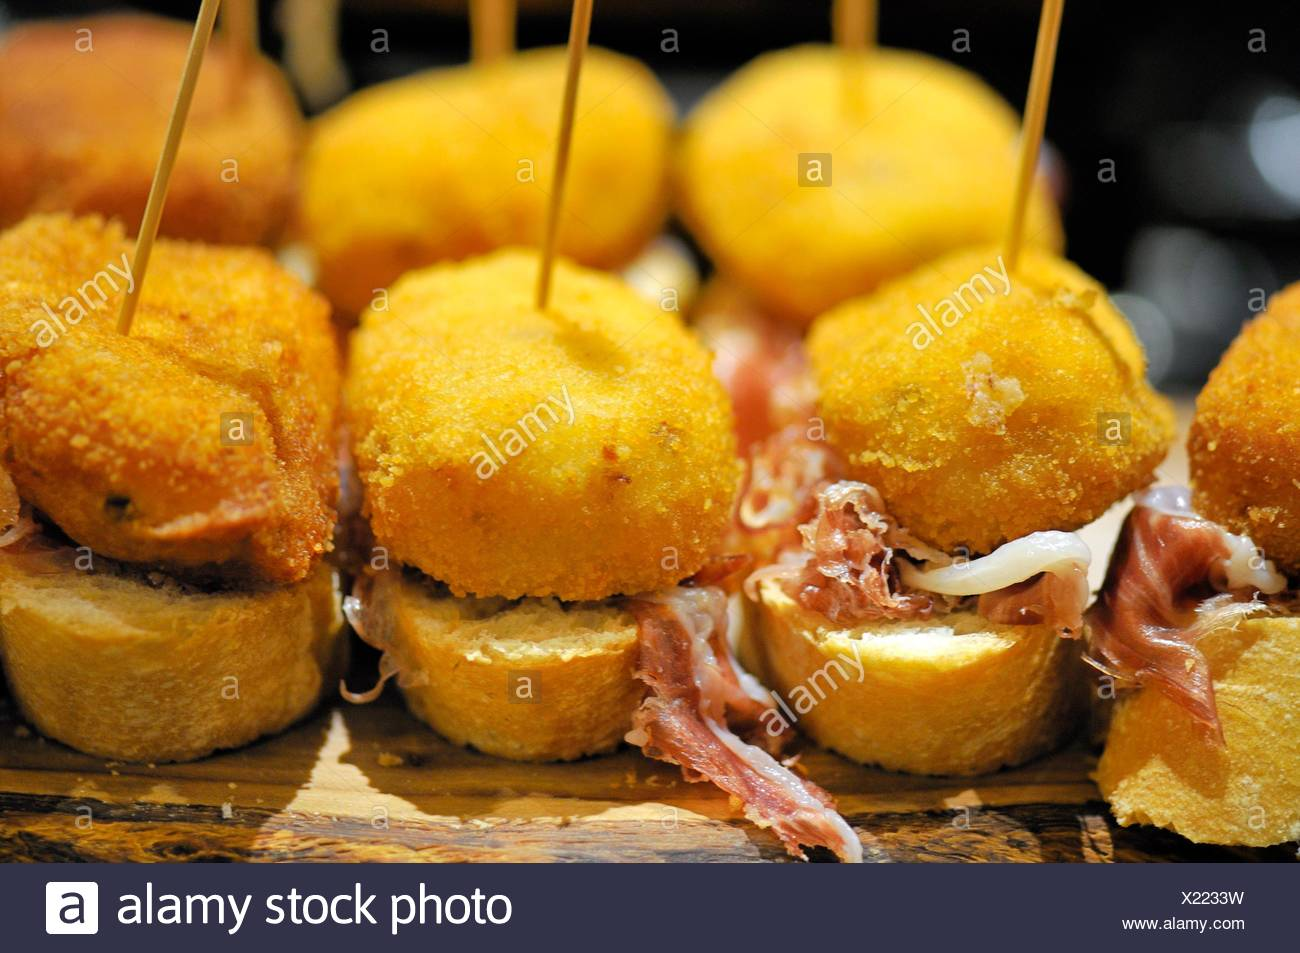 Pintxos, also called tapas very typical at Basque country, Bilbao bar, North of Spain. - Stock Image